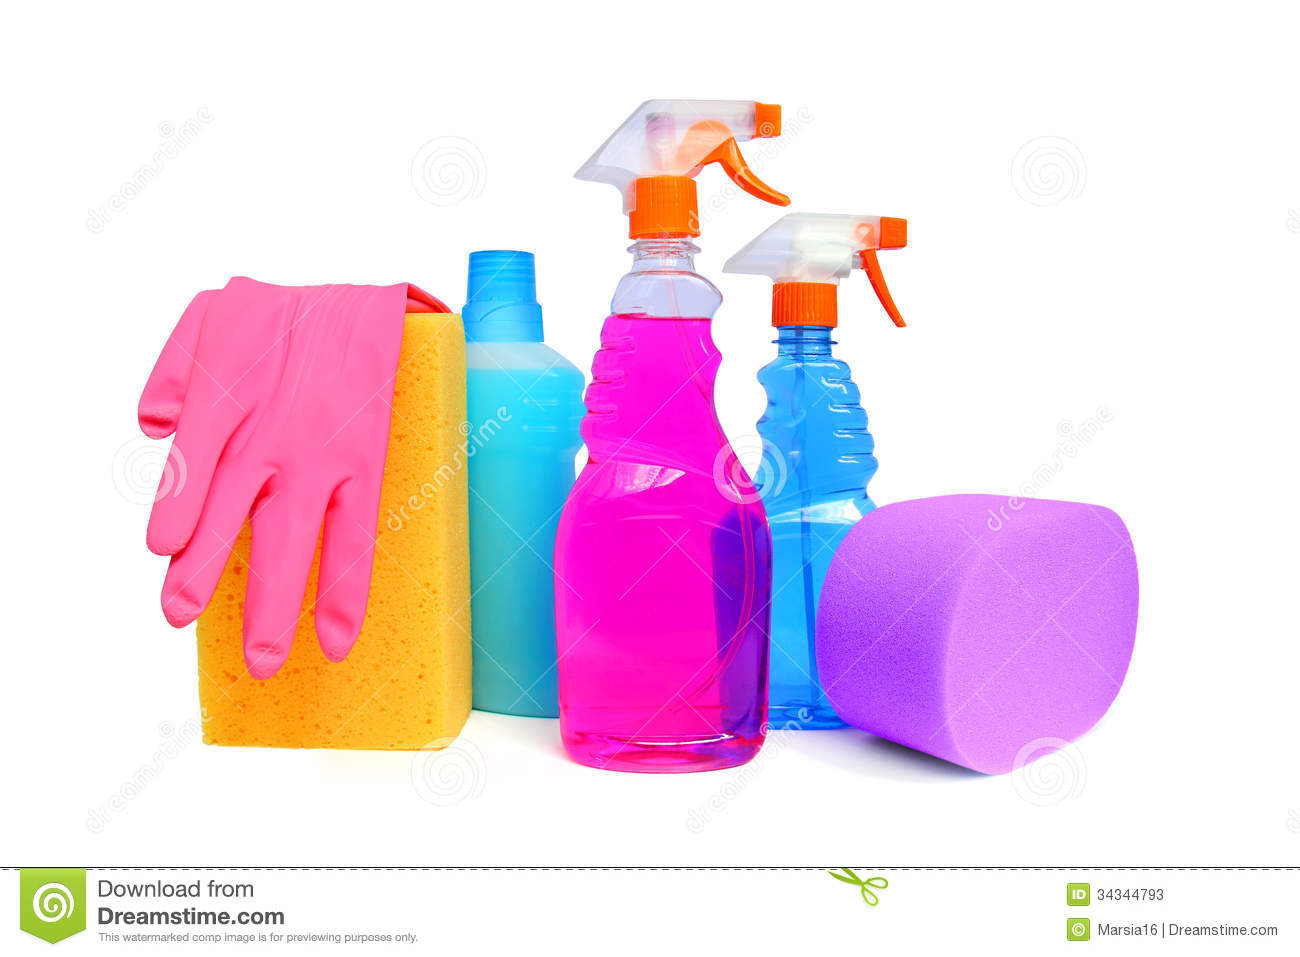 Cleaning Supplies On White Background Including Several Spray Bottles